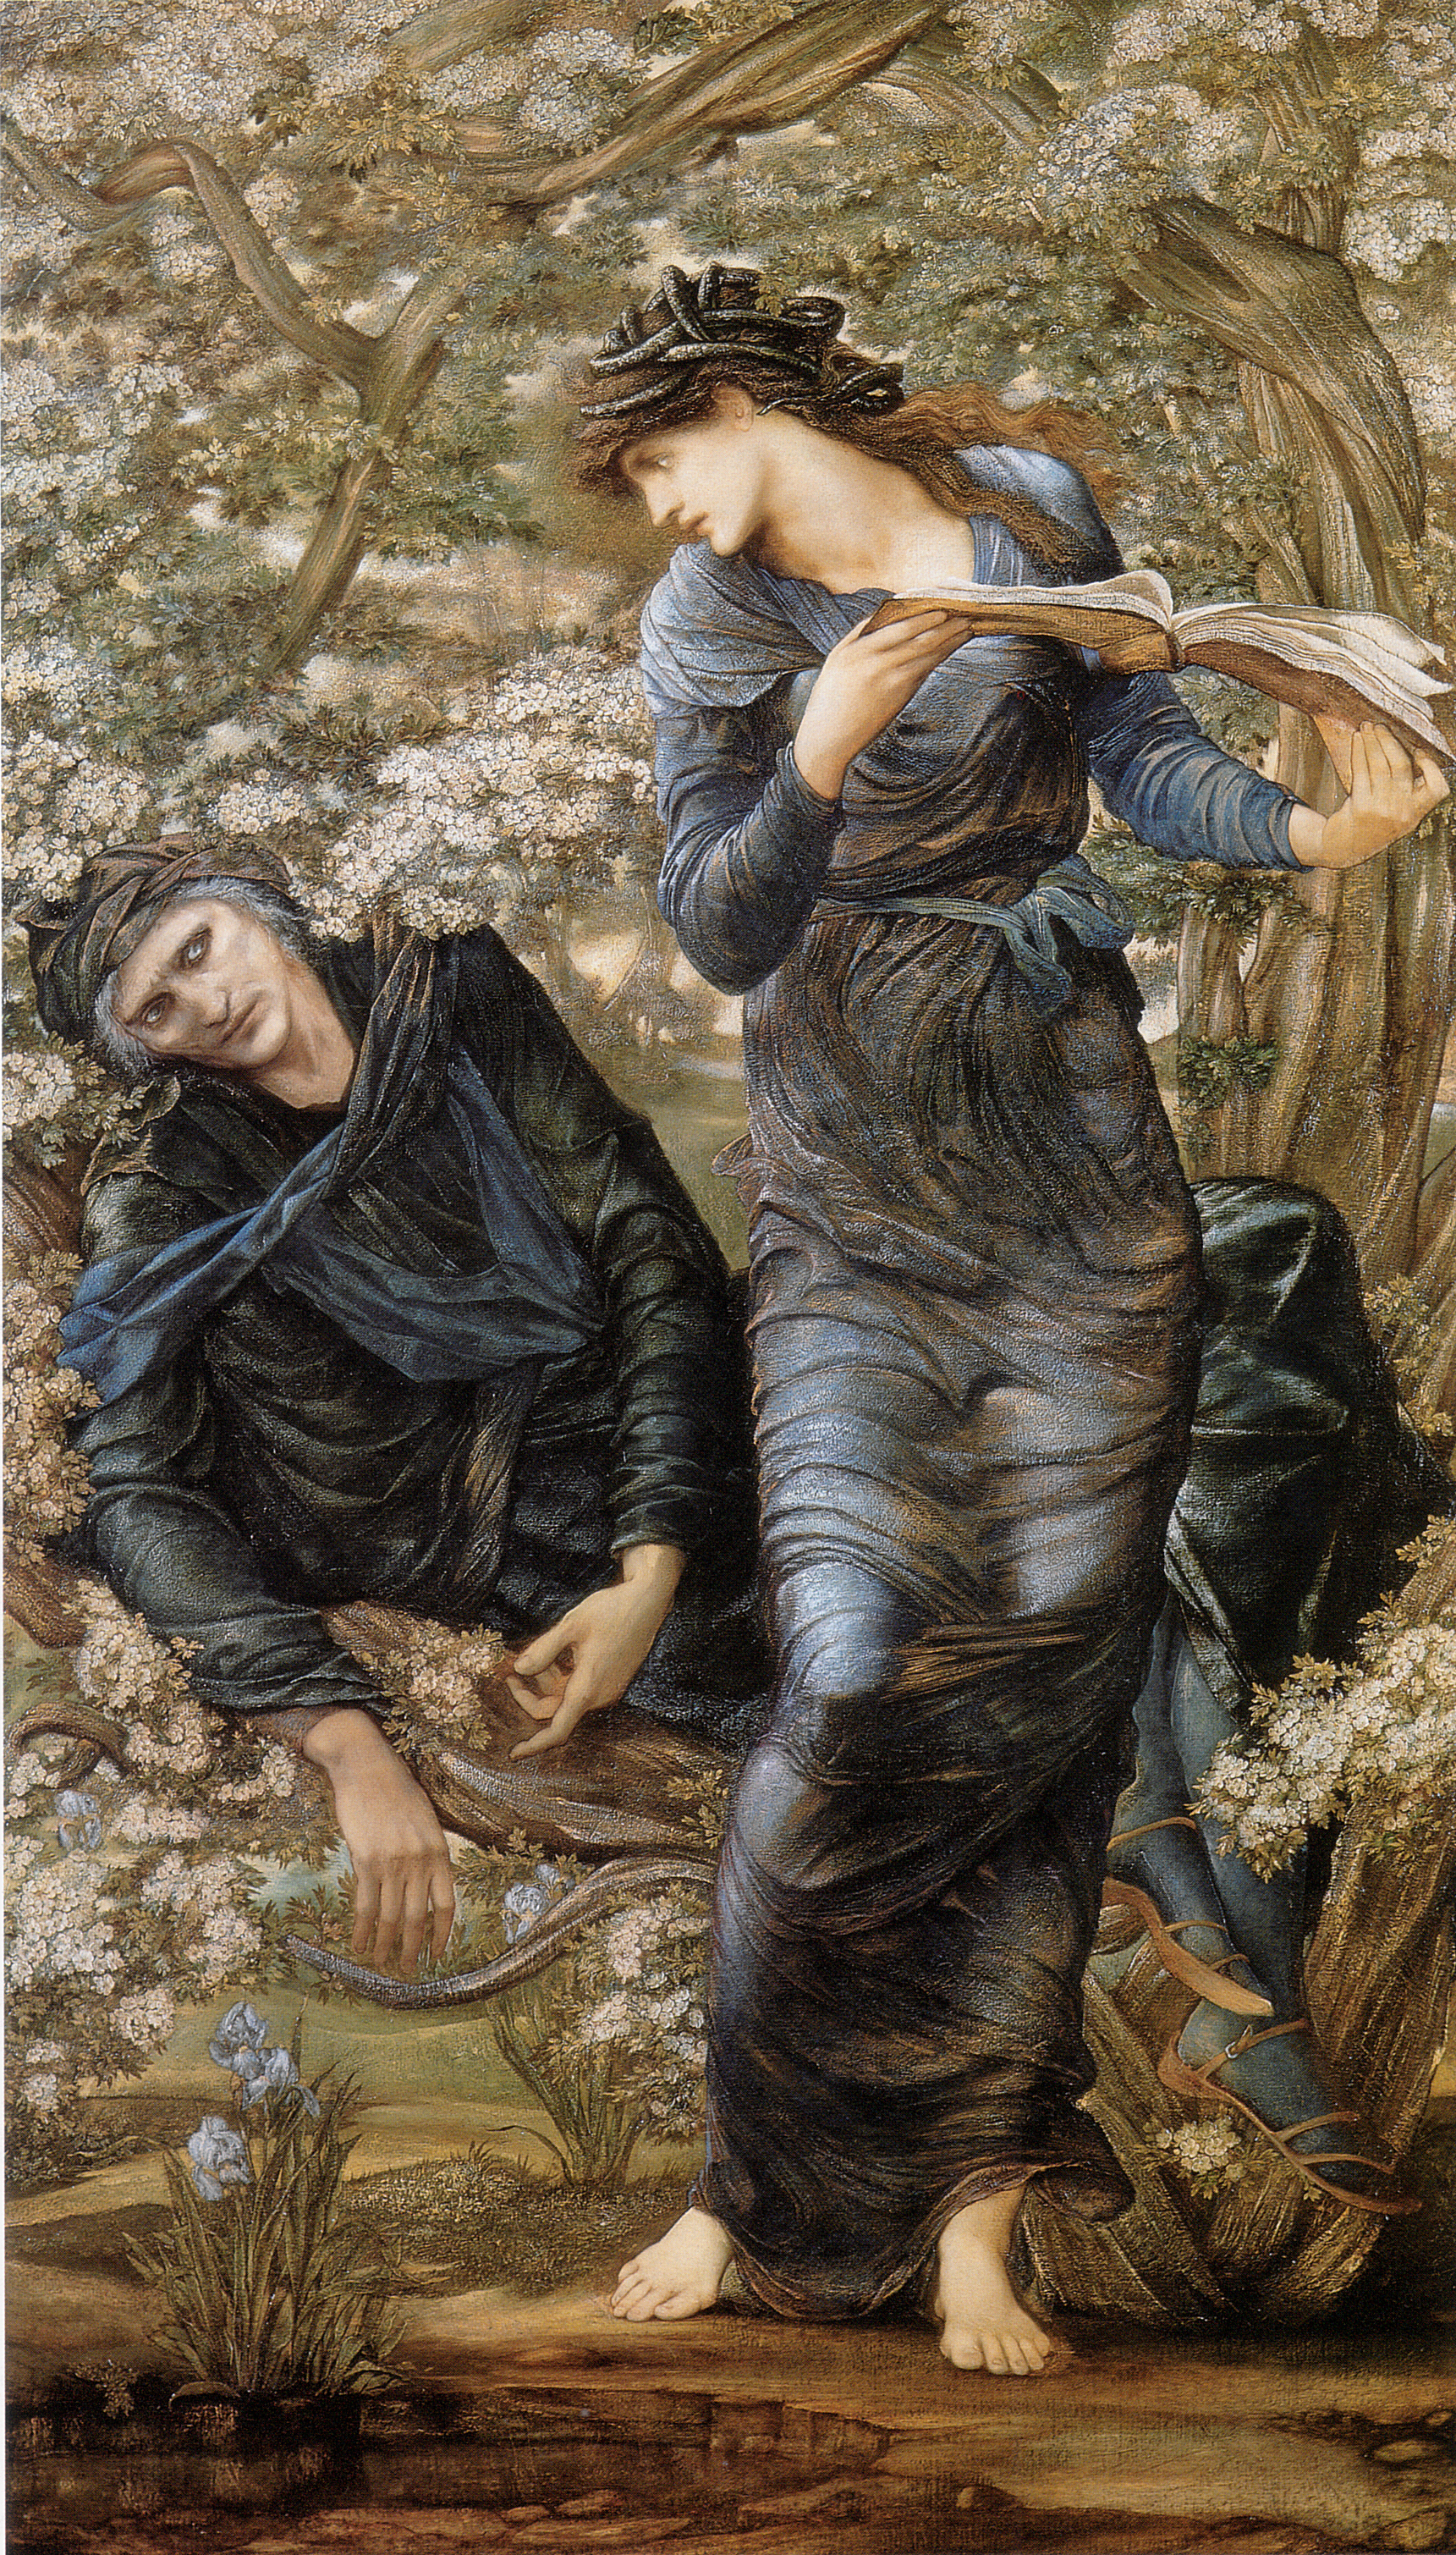 An image of 'The Beguiling of Merlin' by Edward Burne-Jones [Public domain].